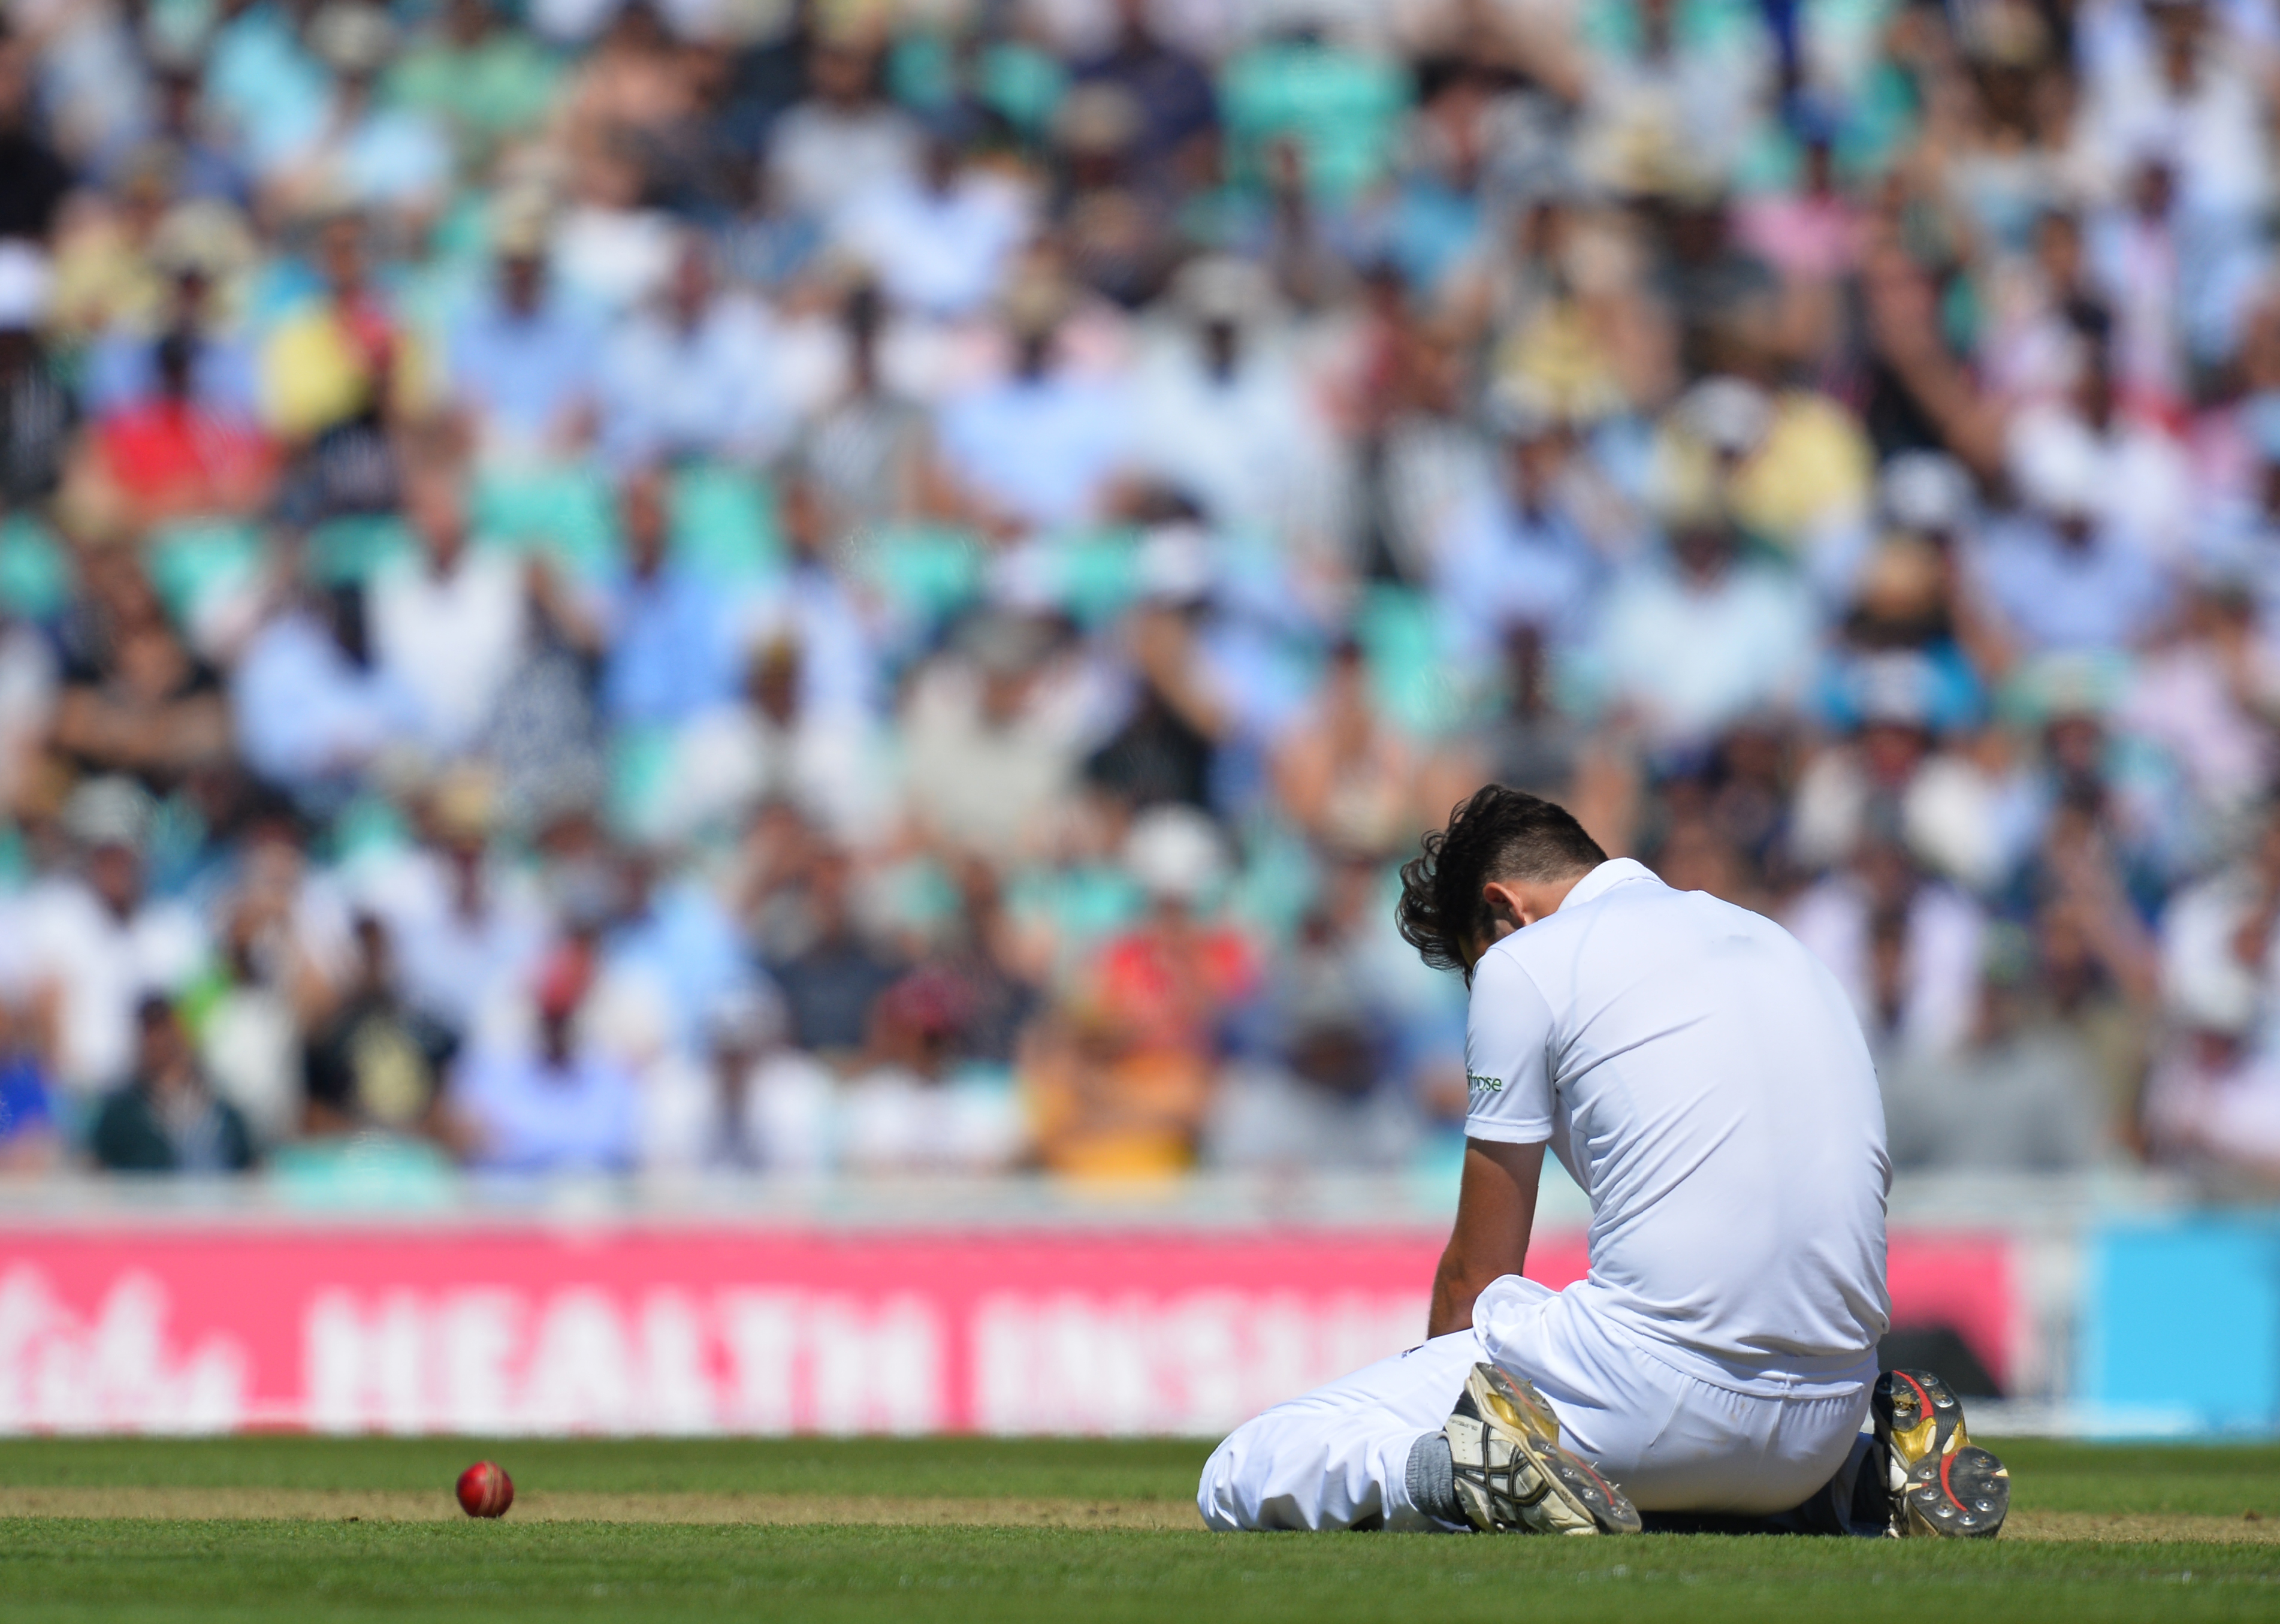 England's Steven Finn reacts after missing a catch off Pakistan's Azhar Ali during play on the second day of the fourth test cricket match between England and Pakistan at the Oval in London on August 12, 2016.   / AFP PHOTO / GLYN KIRK / RESTRICTED TO EDITORIAL USE. NO ASSOCIATION WITH DIRECT COMPETITOR OF SPONSOR, PARTNER, OR SUPPLIER OF THE ECB